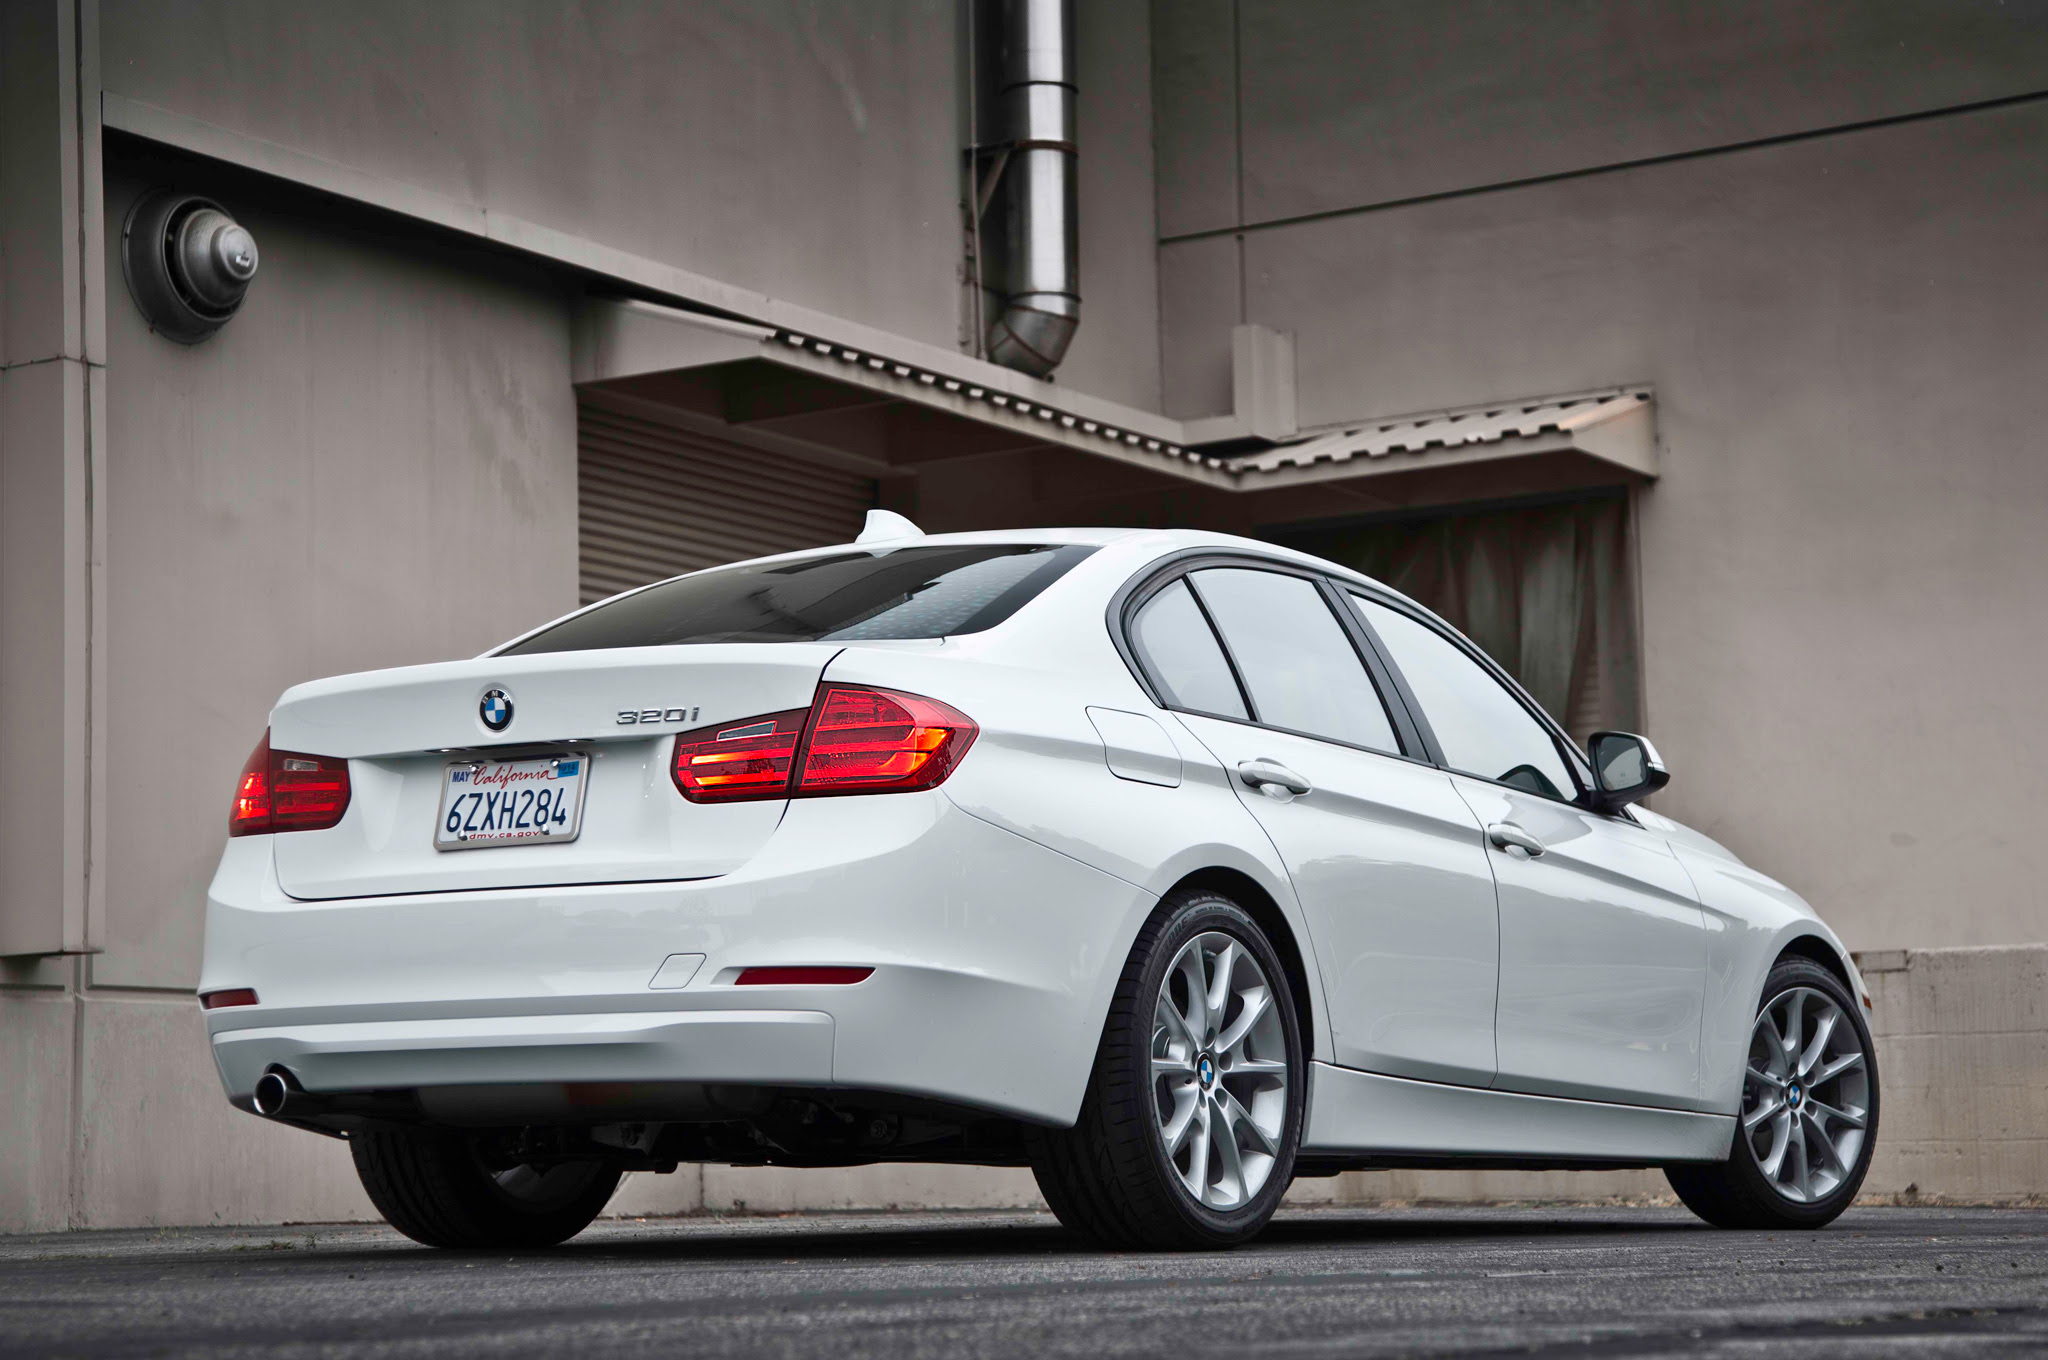 2013 Bmw F30 320i Test Drive By Motortrend Autoevolution